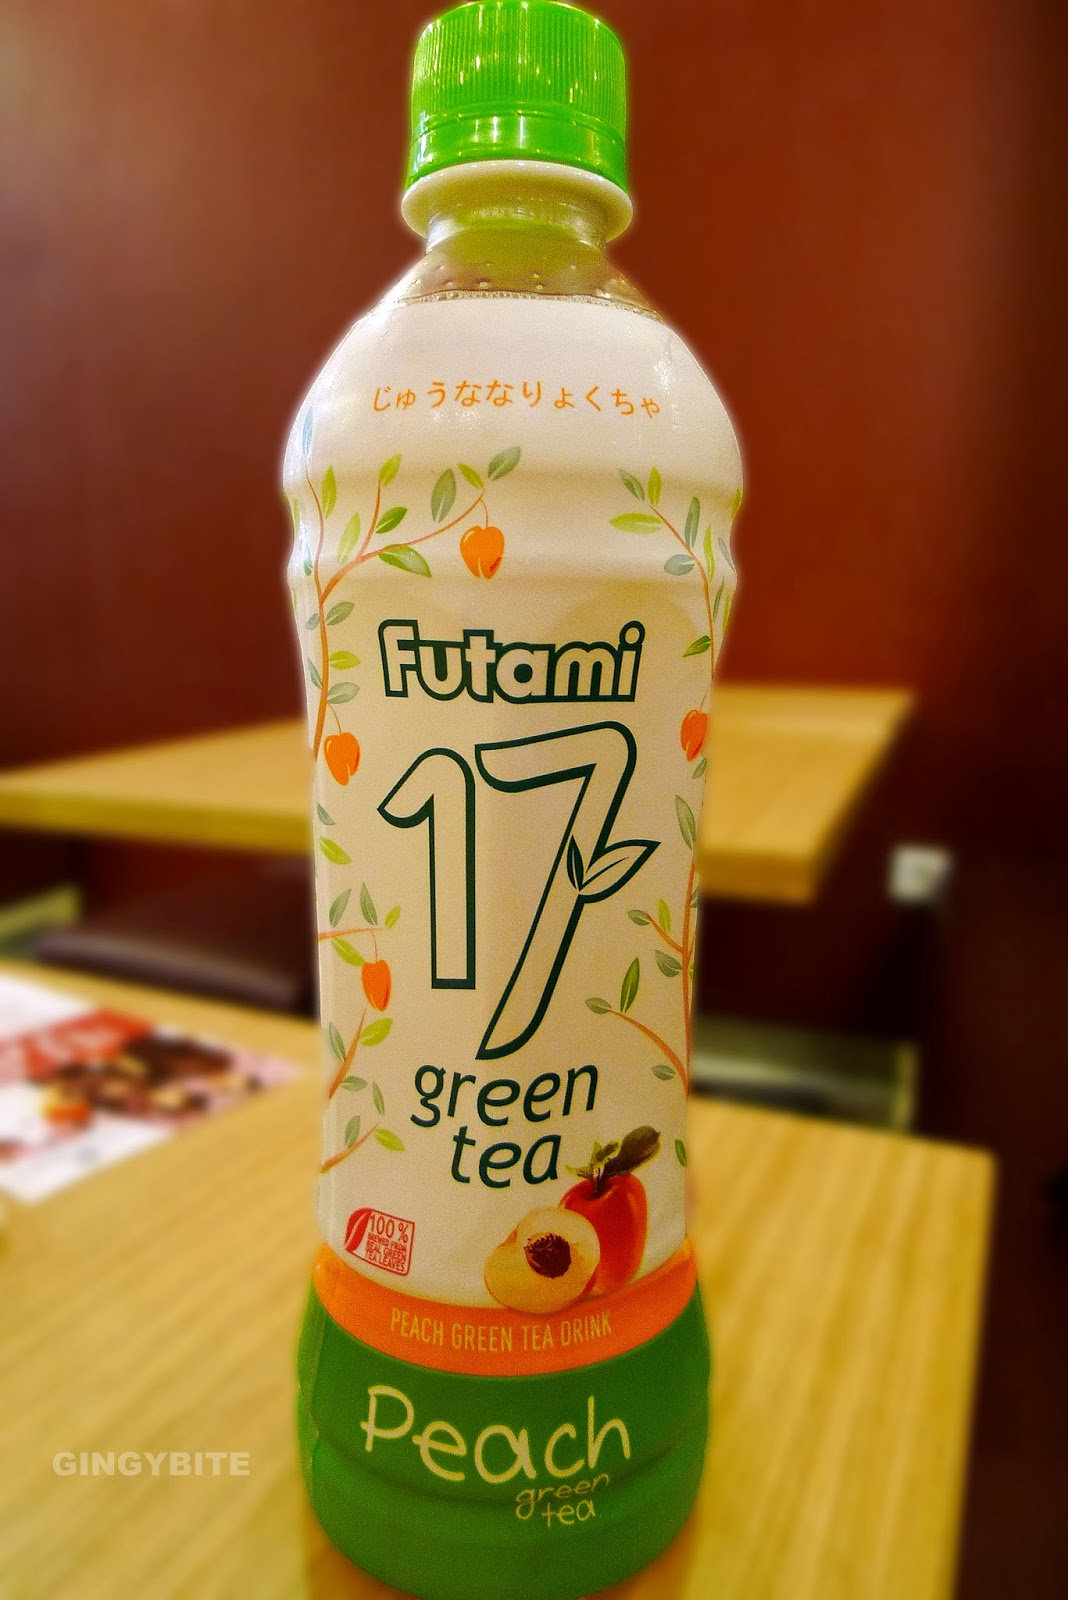 Futami Peach Green Tea